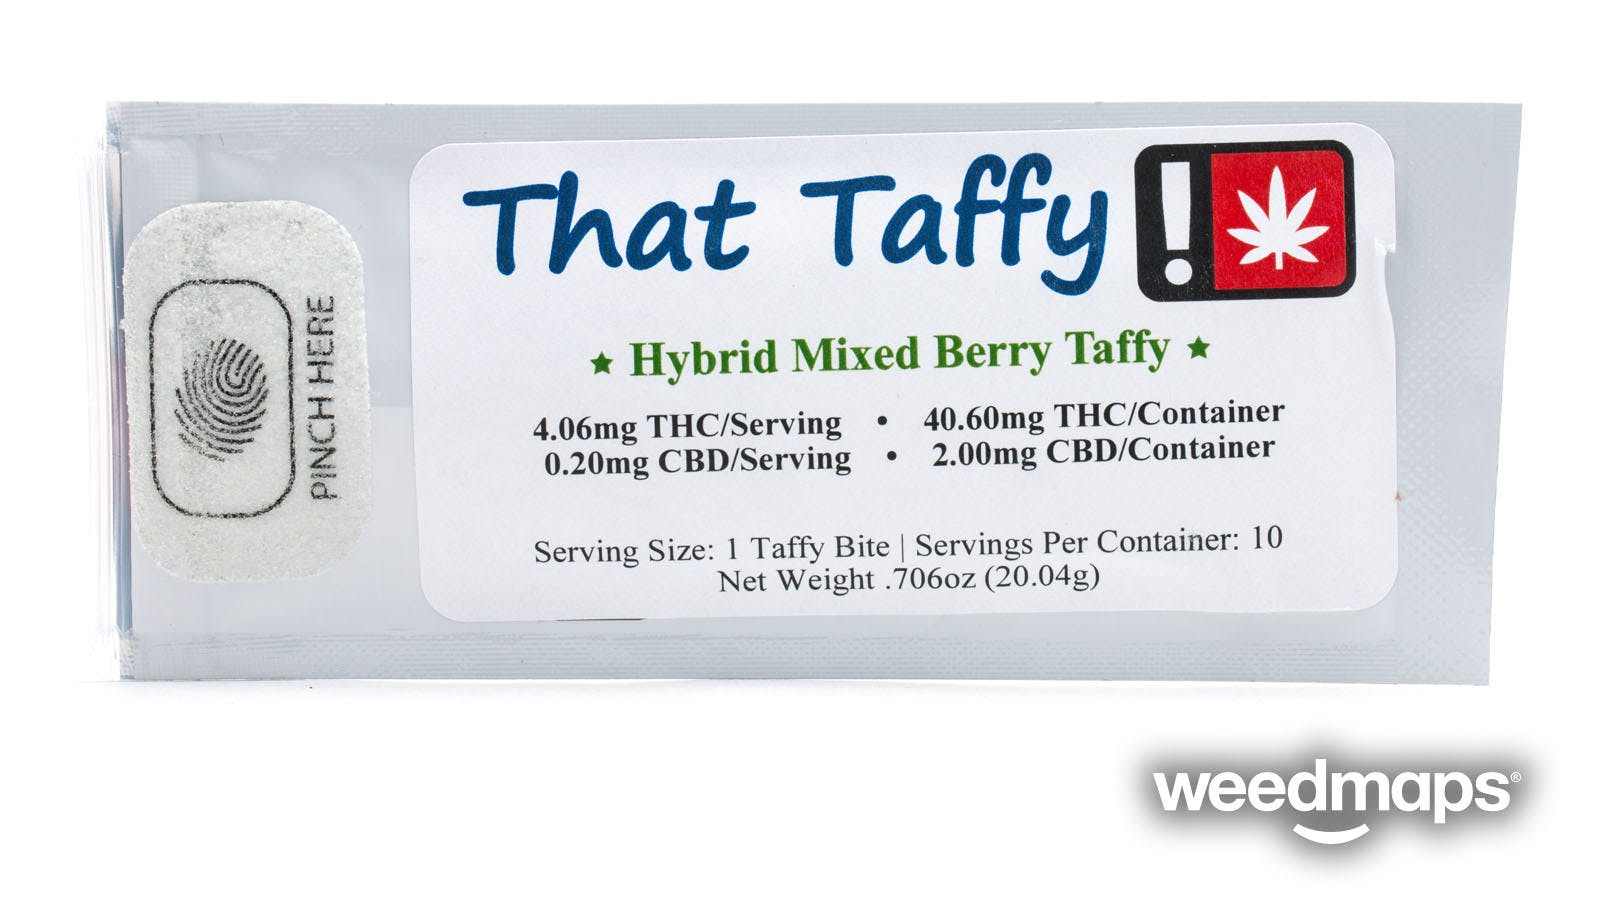 edible-that-taffy-hybrid-tax-included